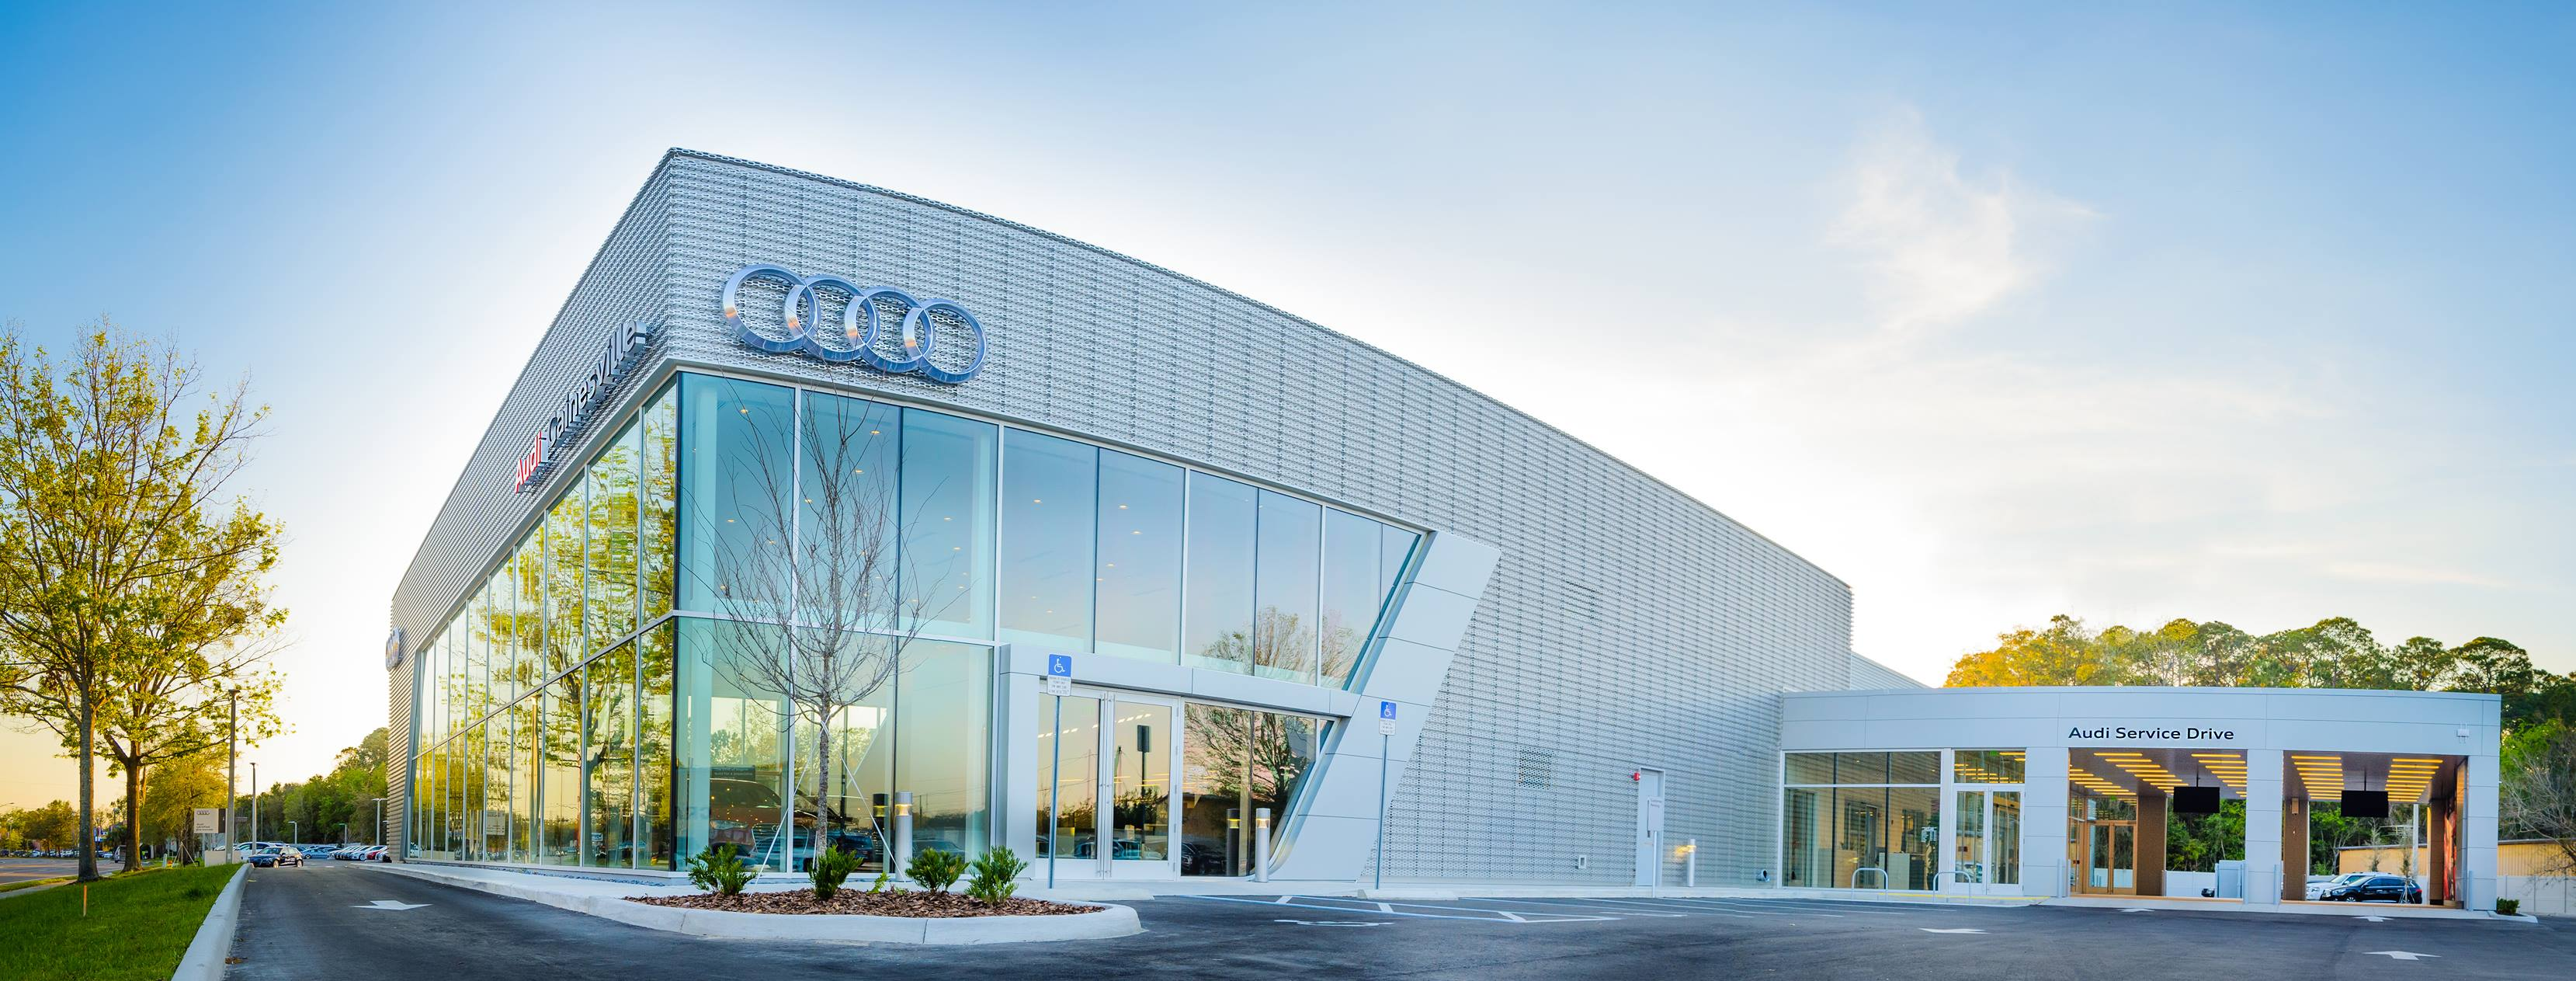 search il for audi in used mclaren dealership sale chicago